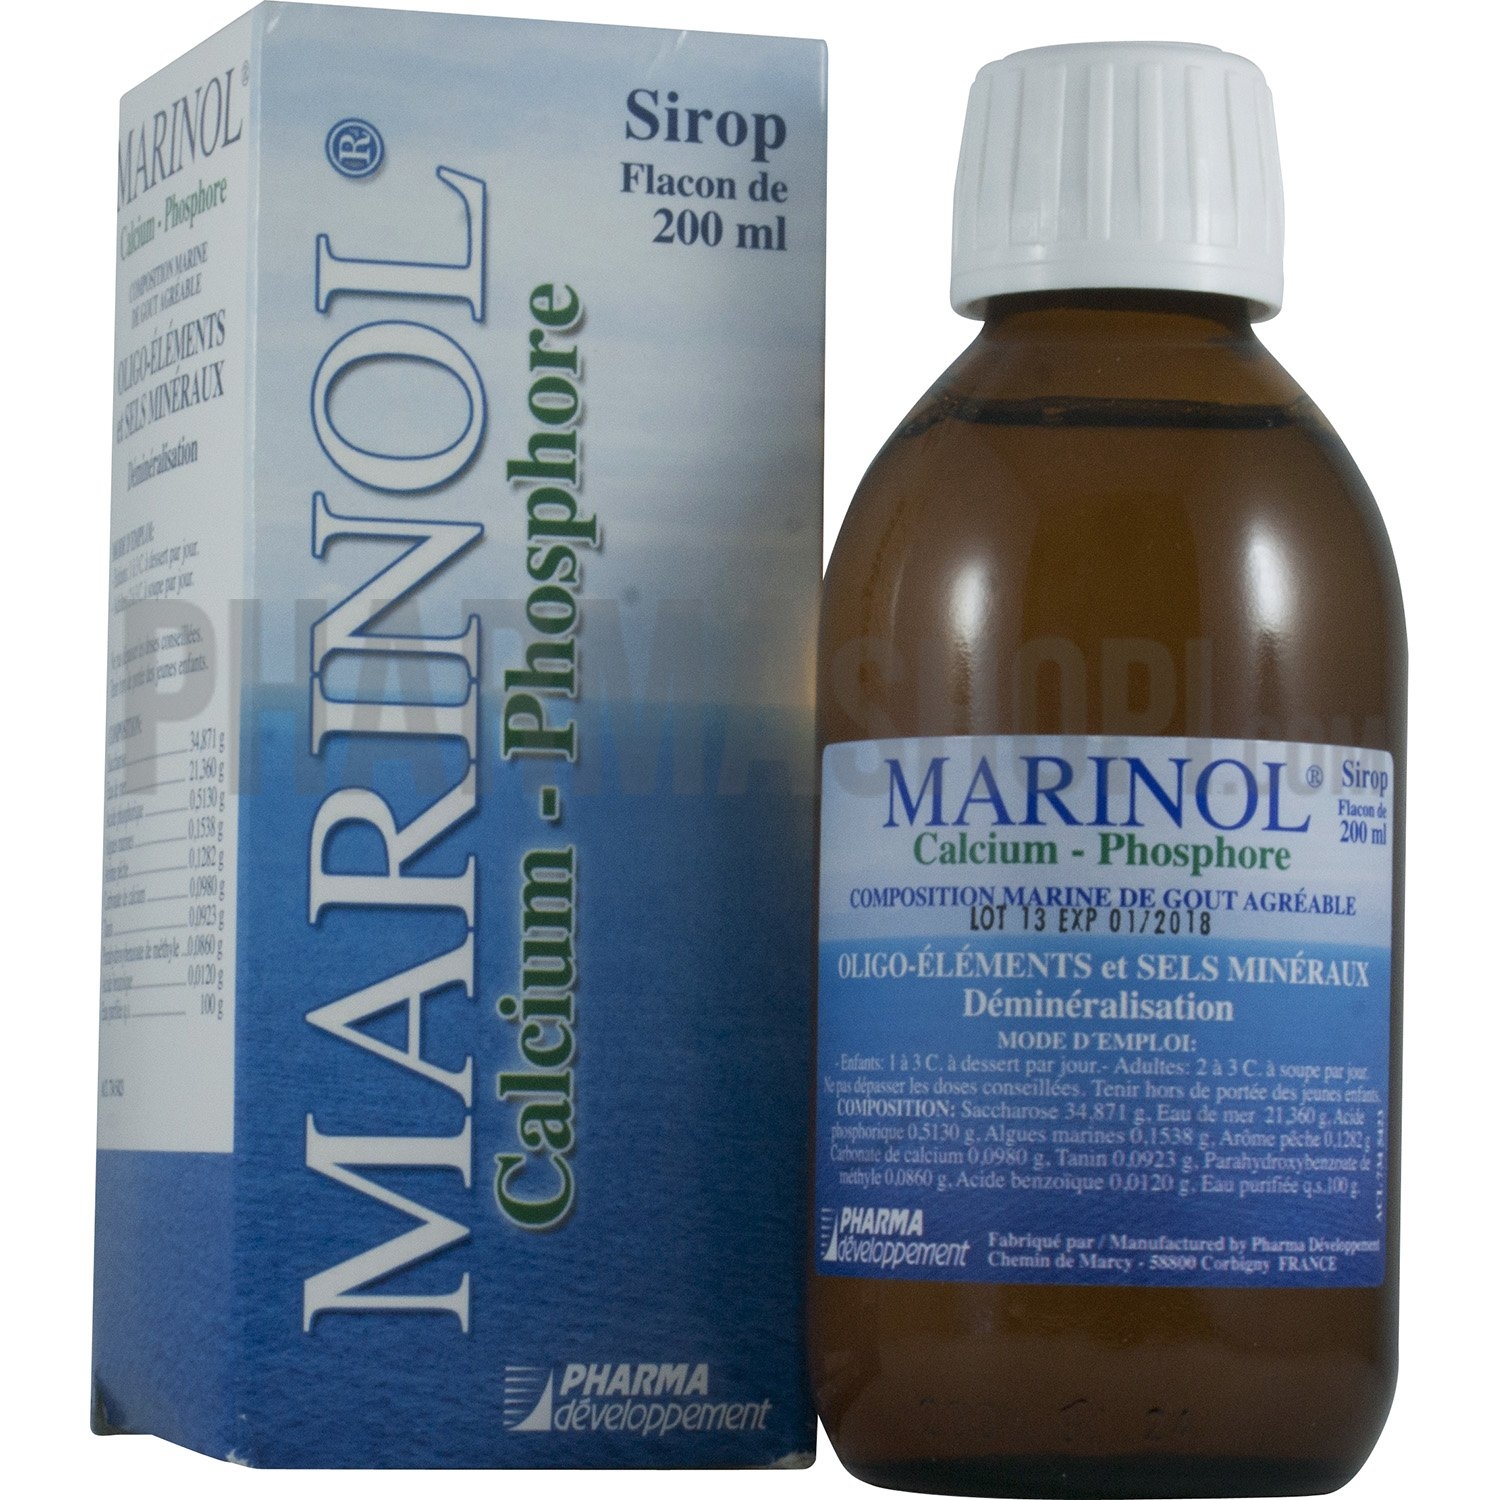 Watch Marinol video